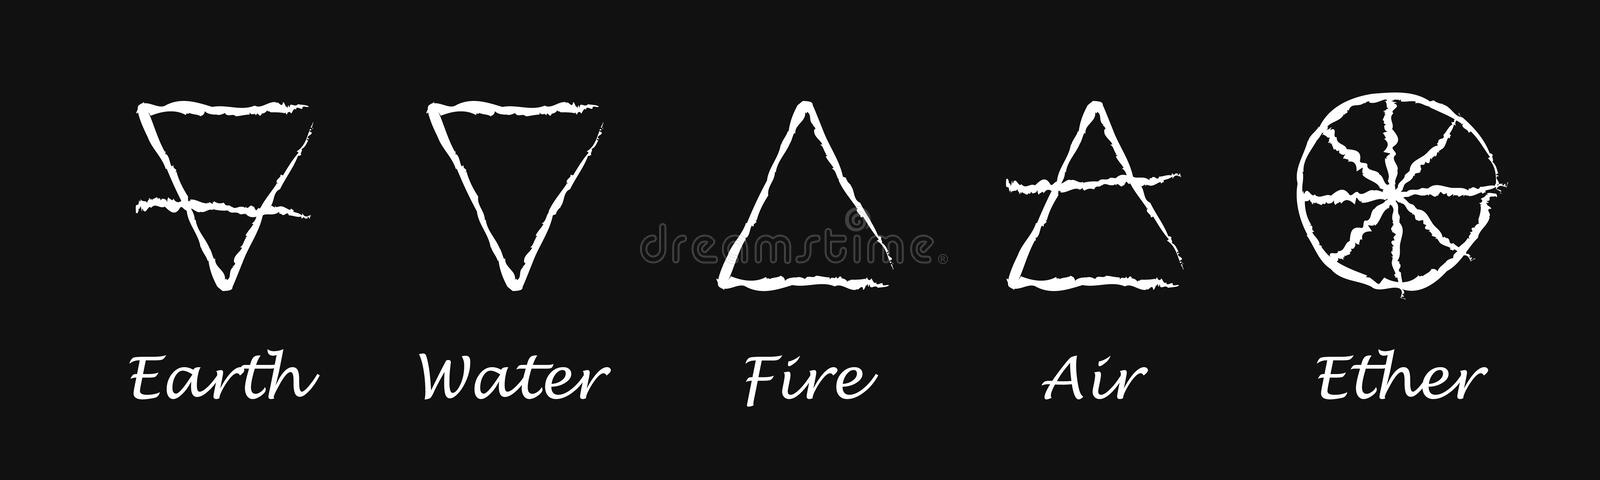 Ether. Air. Earth. Fire. Water. Alchemy vector icons. Vector illustration royalty free stock image